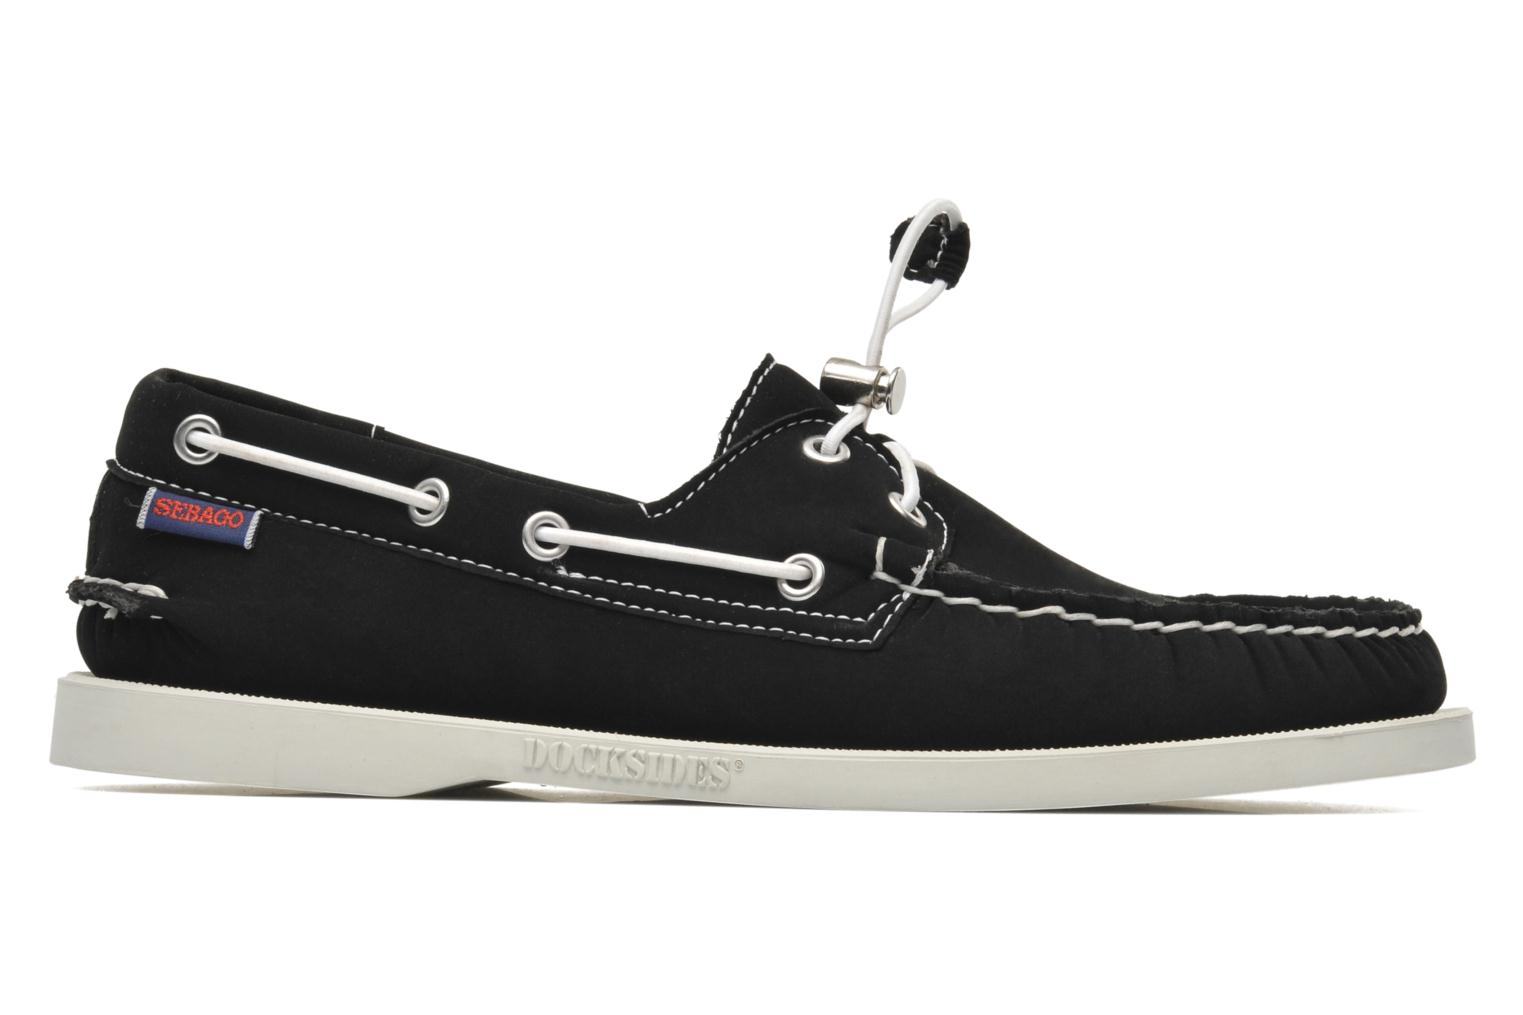 Docksides neoprene Black neoprene